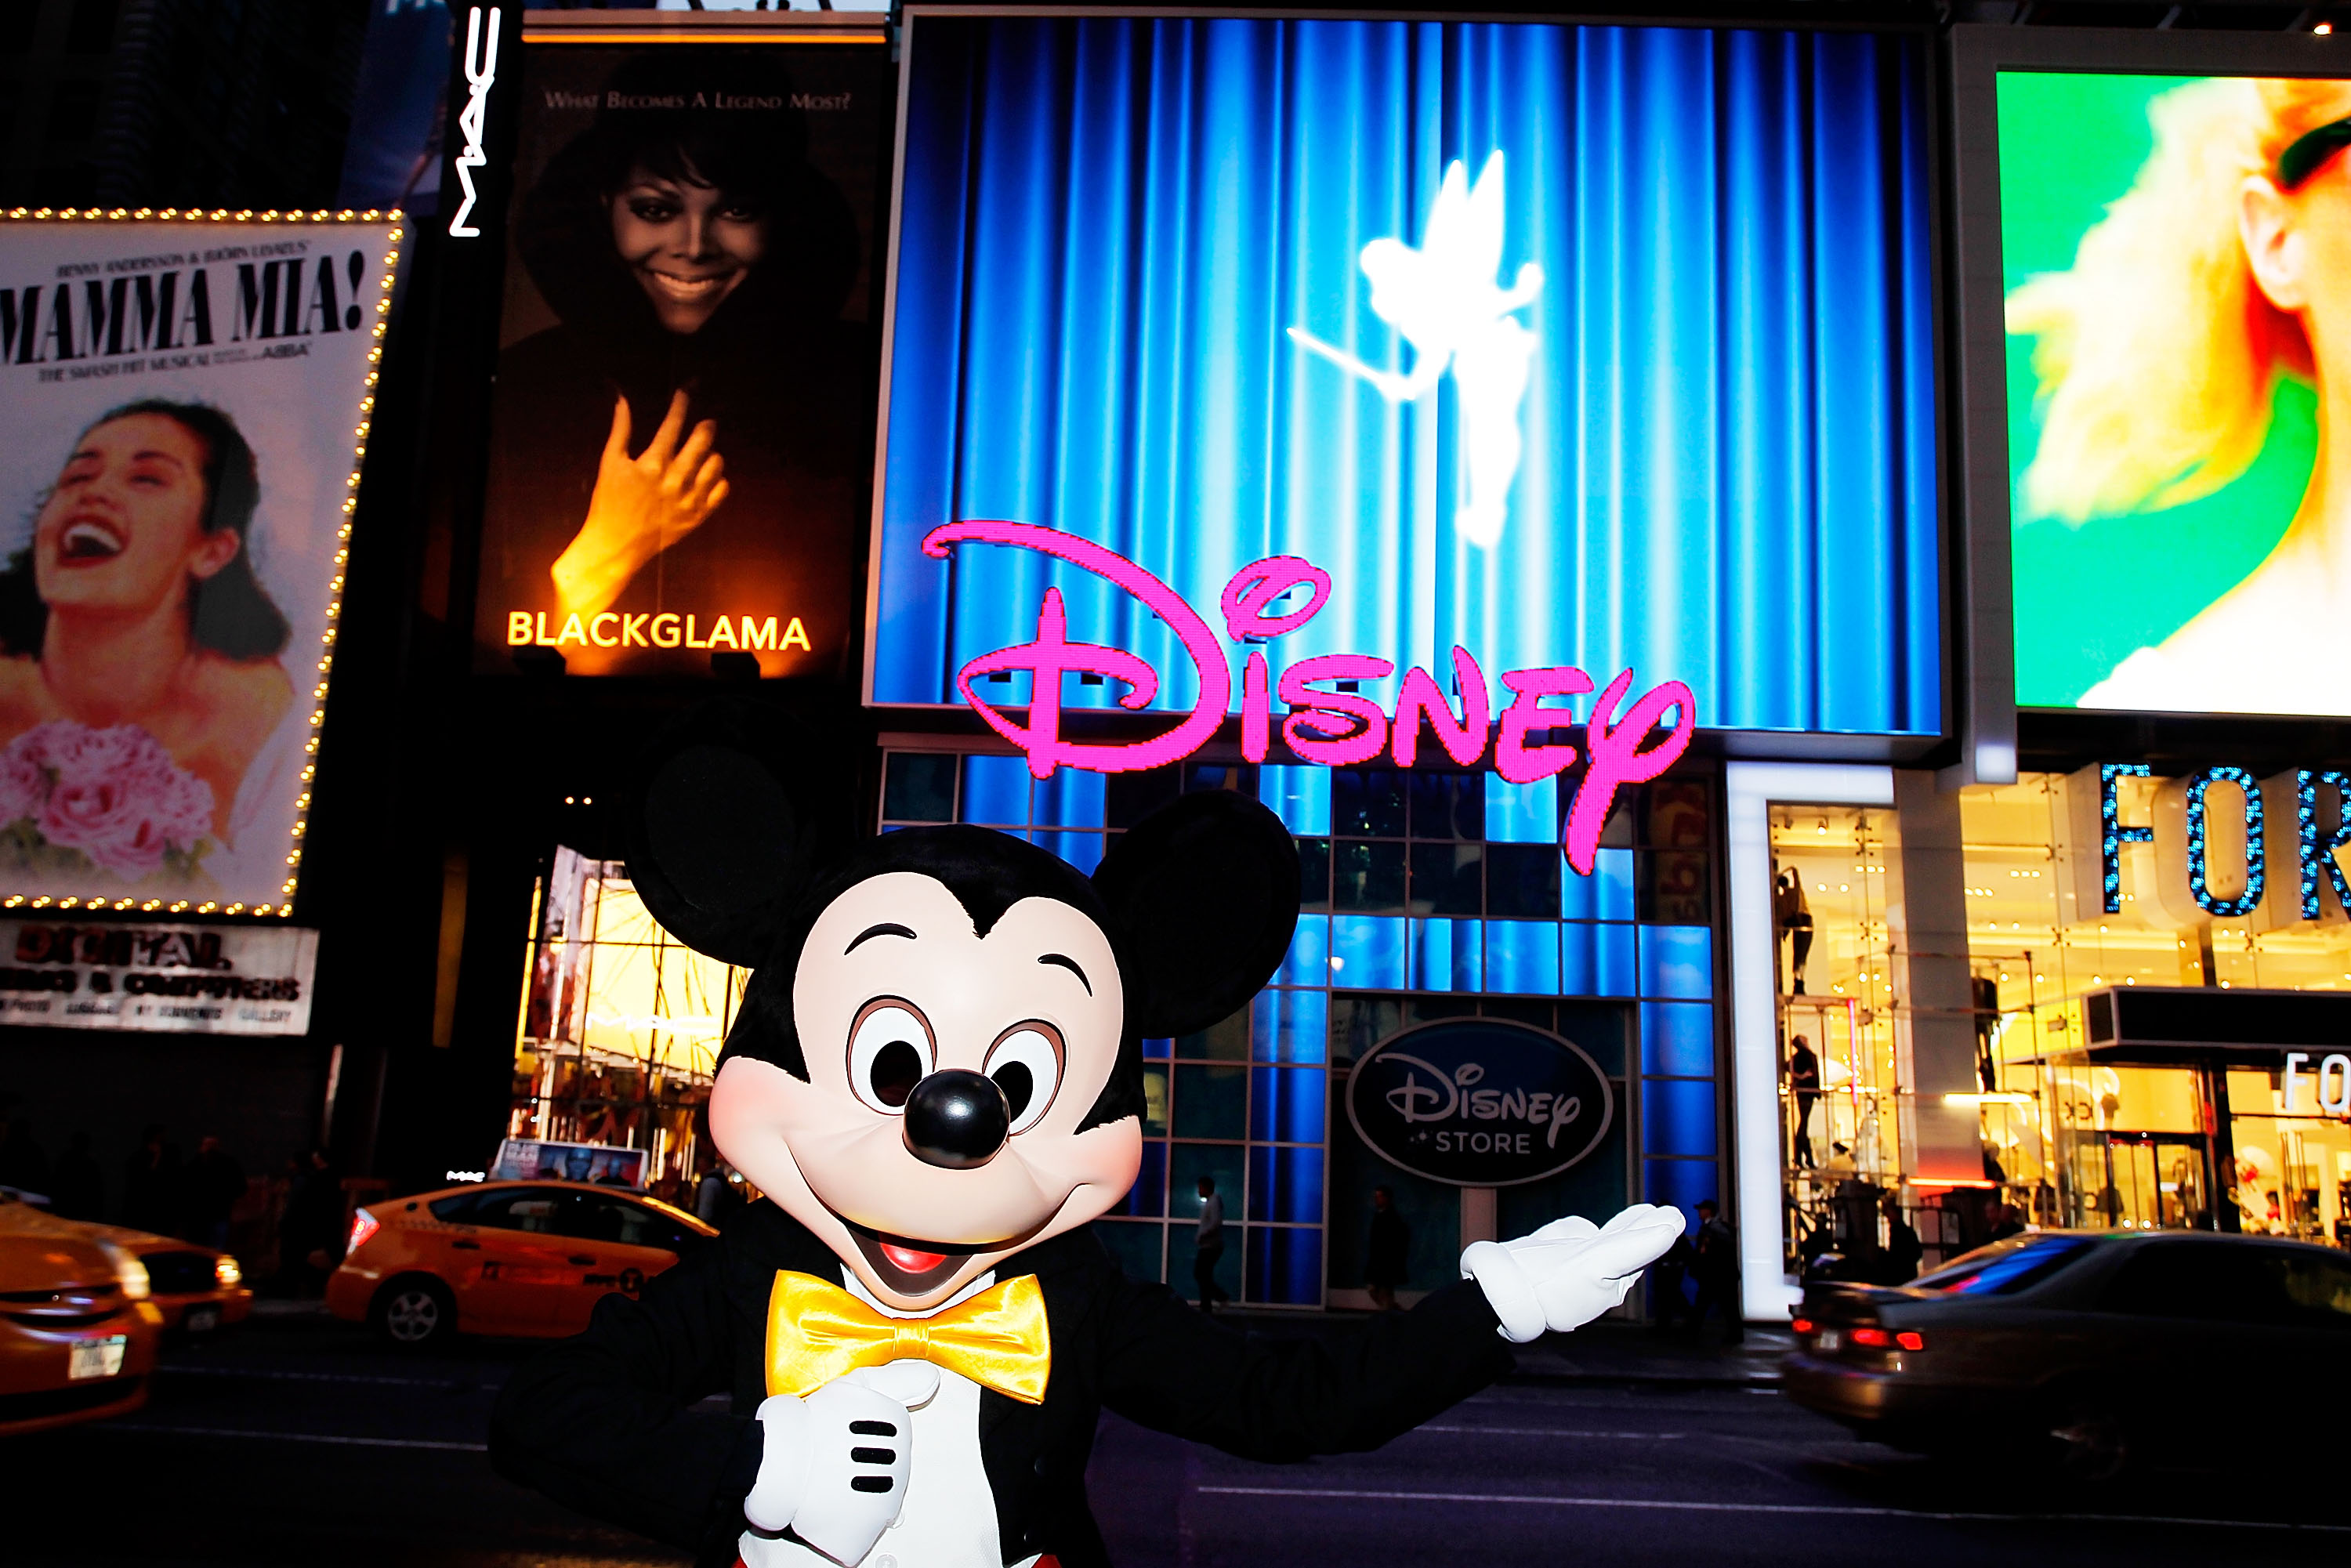 Mickey Mouse Unveils Disney Store's New Digital Billboard In Times Square